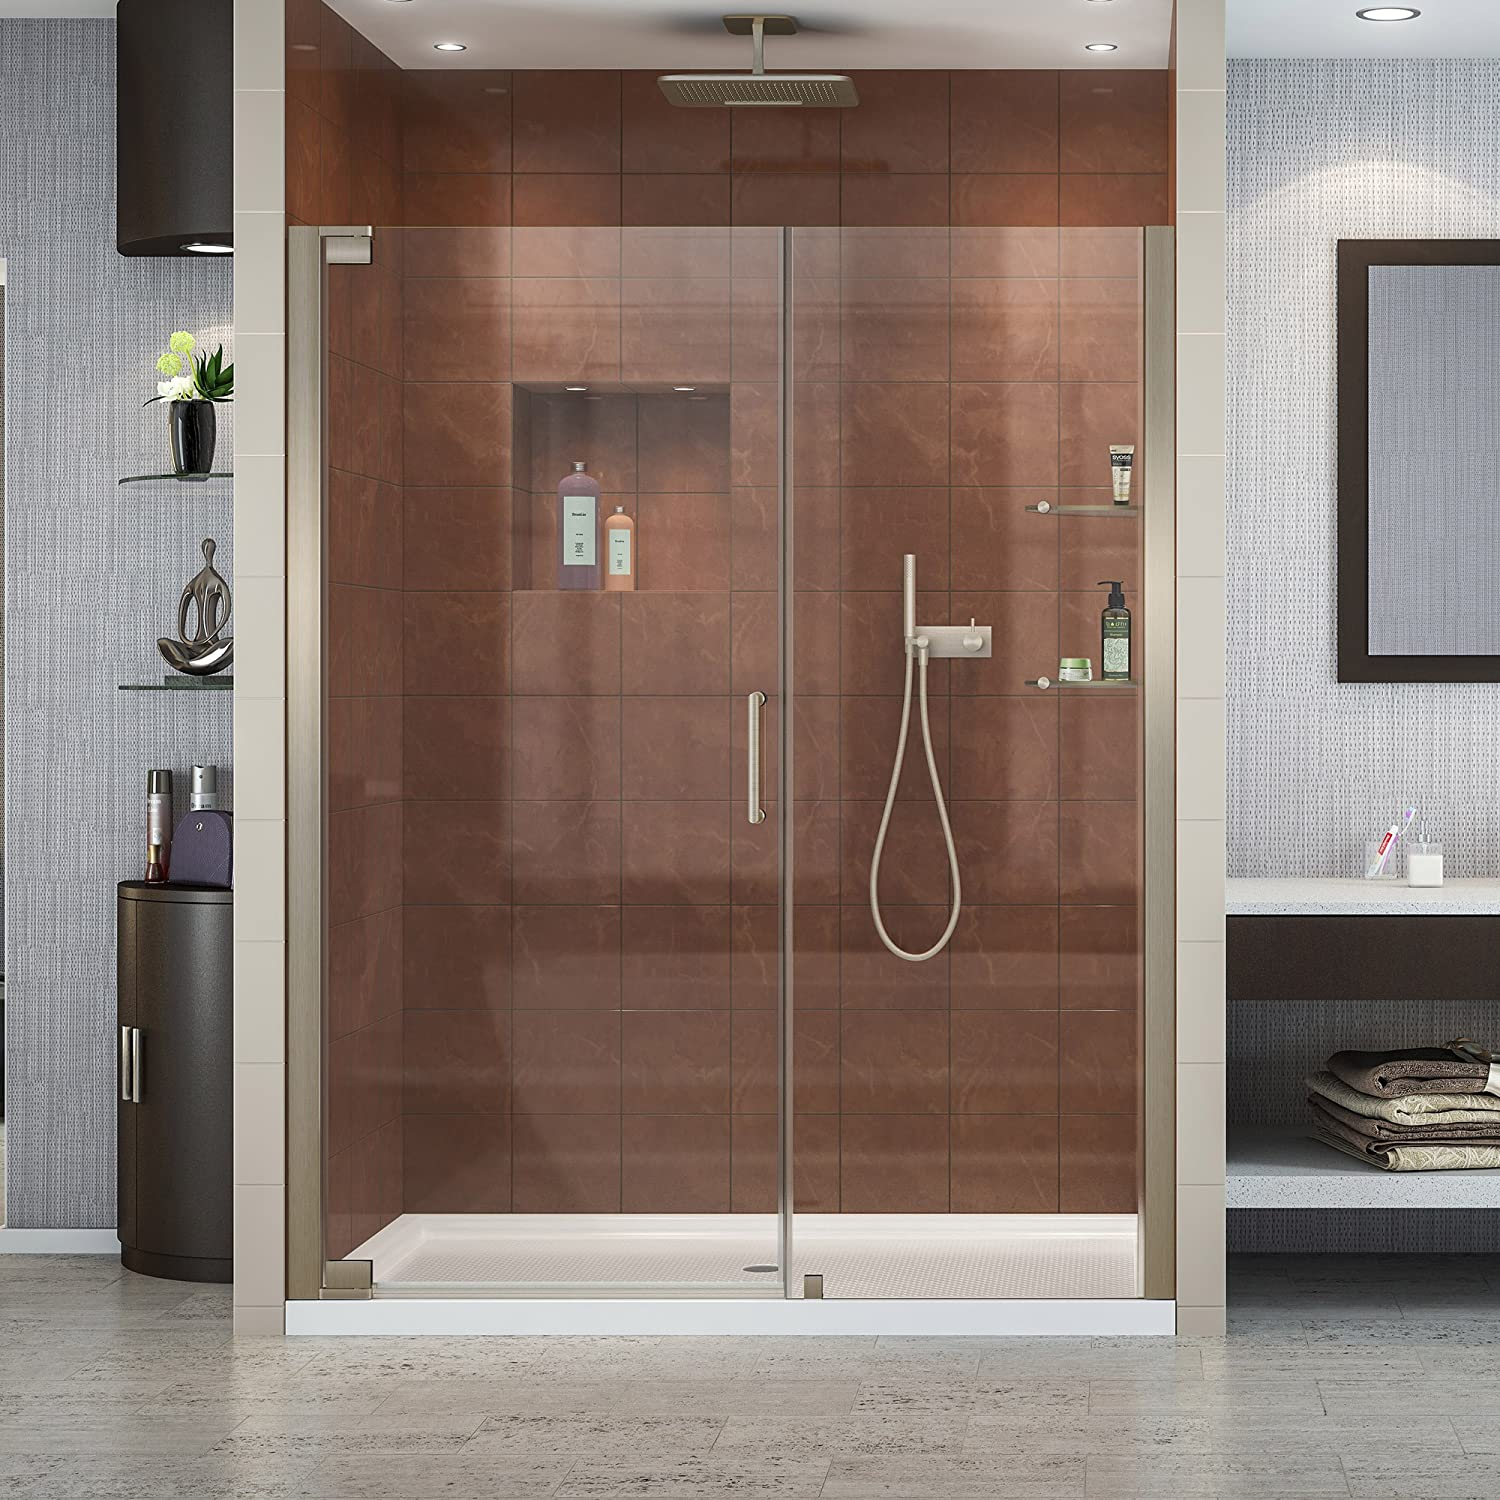 Dreamline Elegance 58 60 In W X 72 In H Frameless Pivot Shower